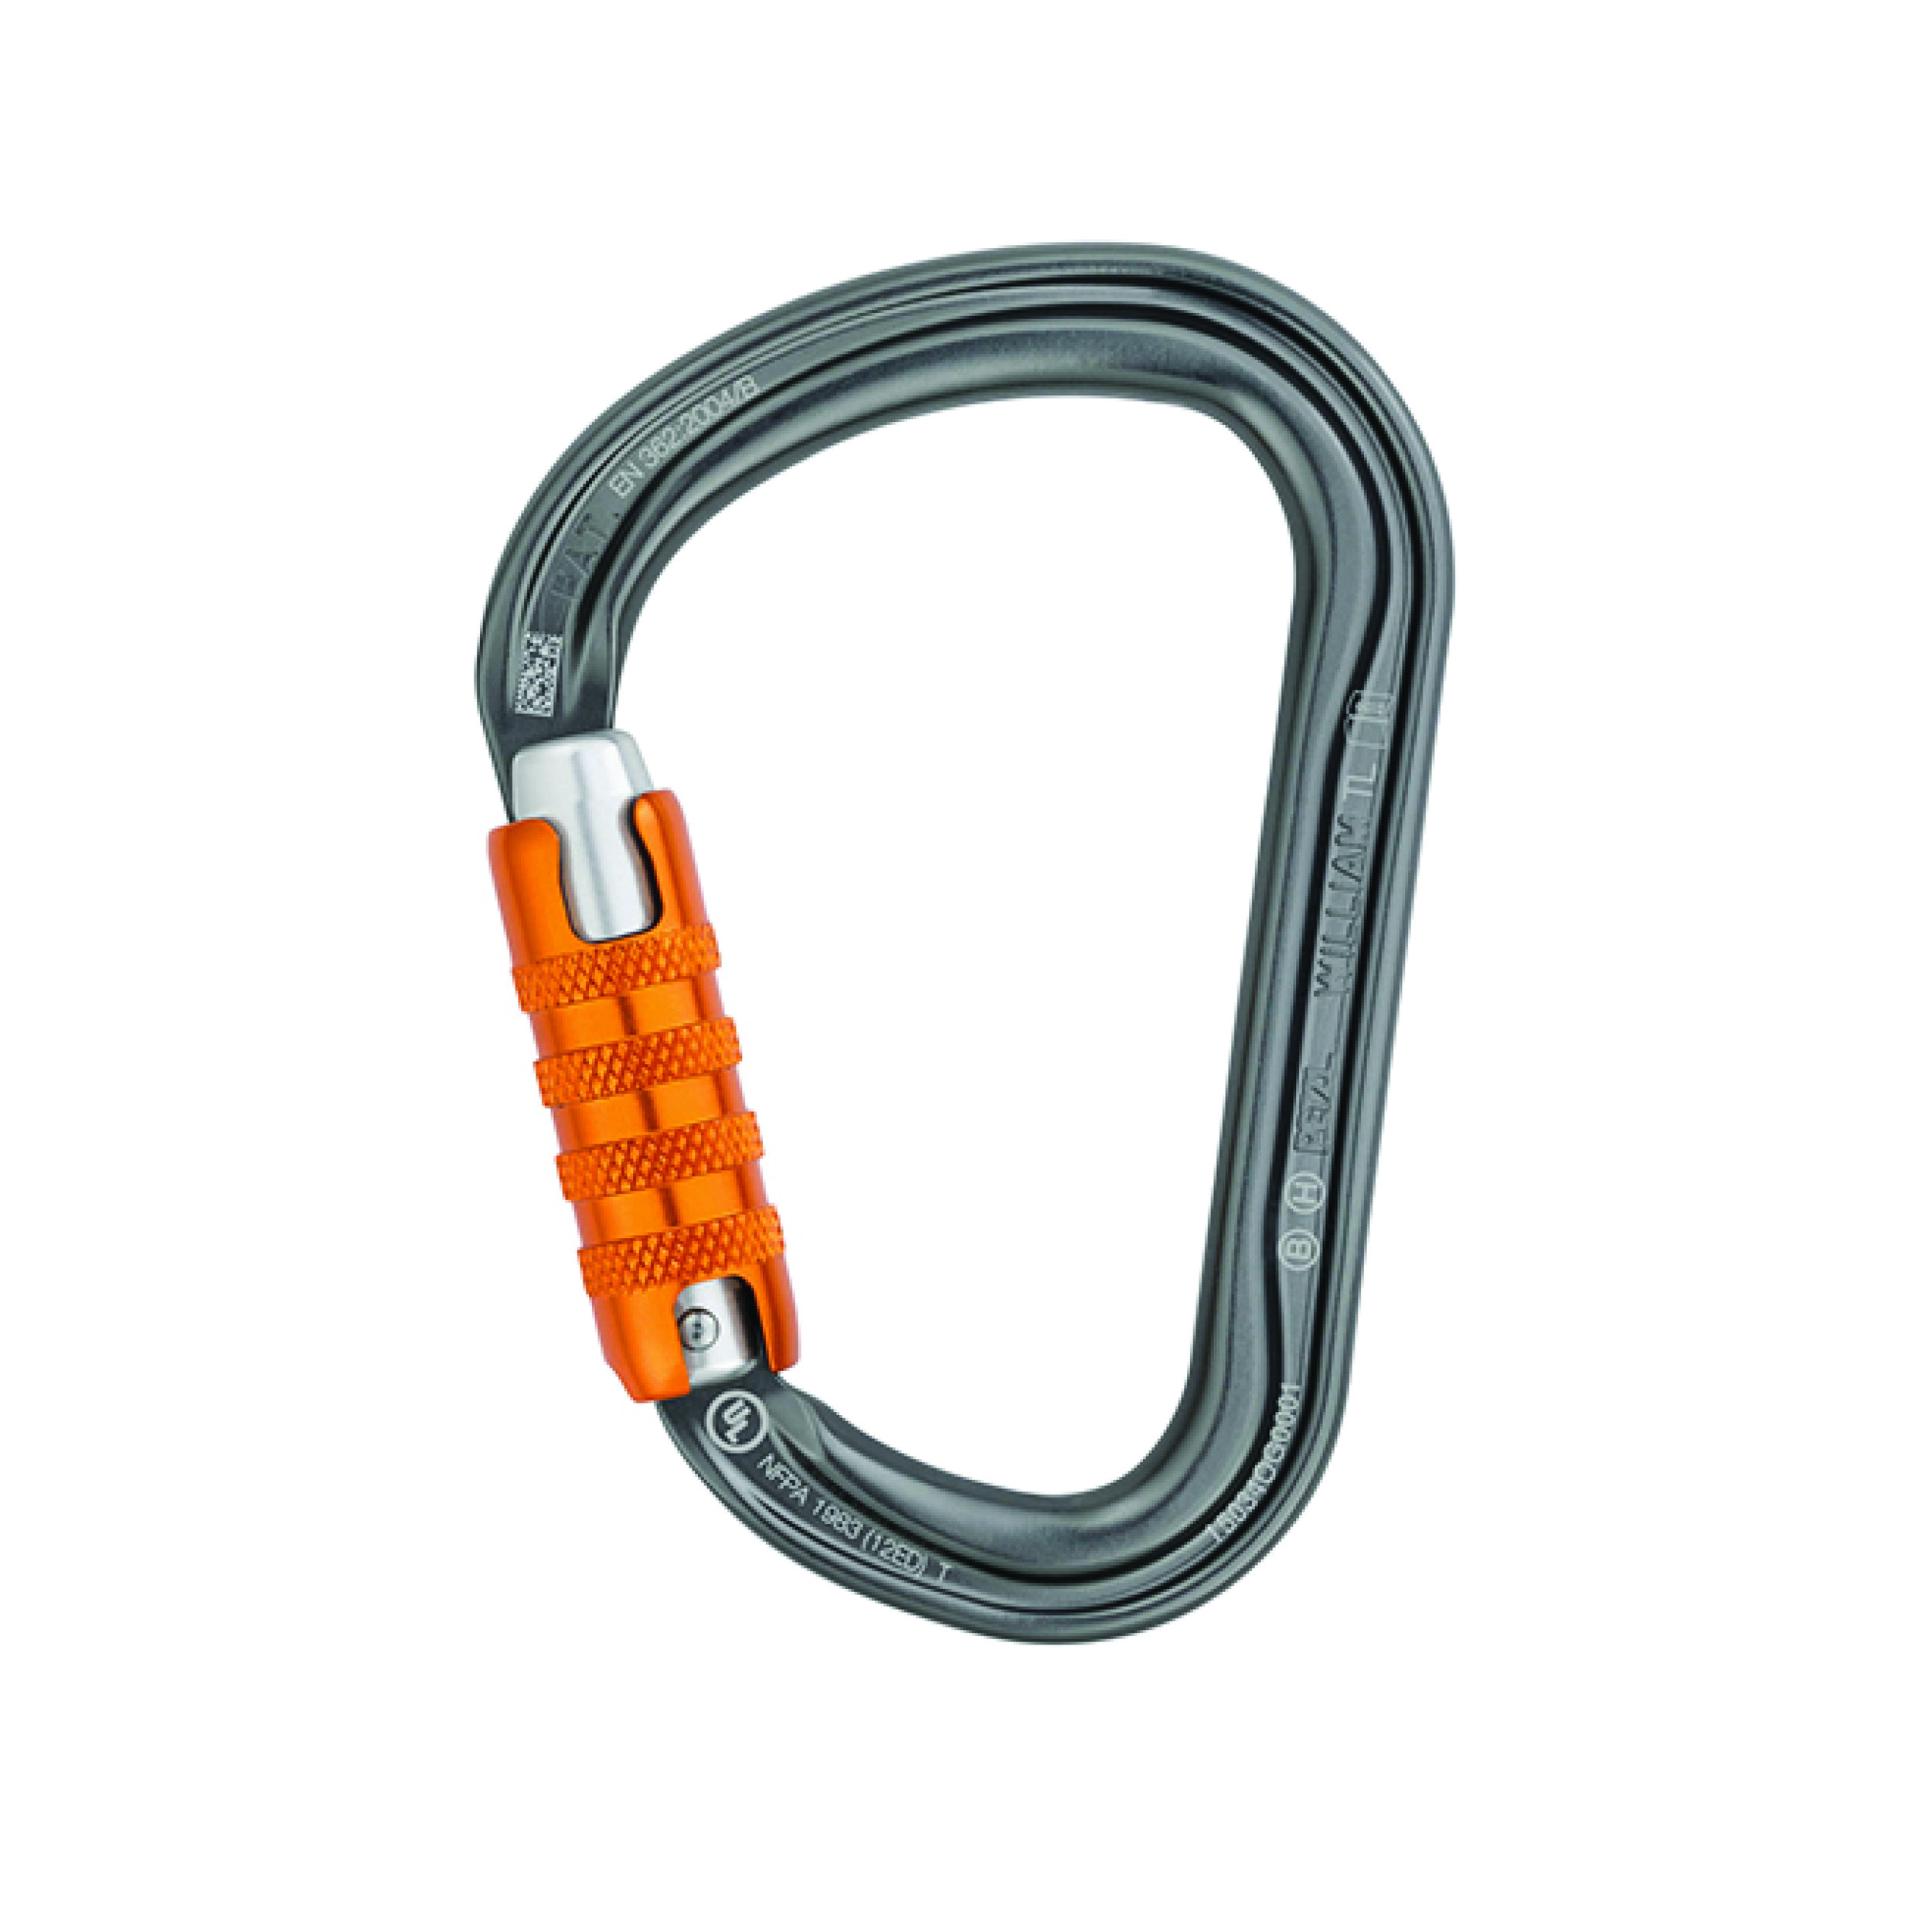 Petzl William H-Frame Carabiner - The lightweight WILLIAM large-capacity asymmetrical carabiner is made of aluminum.